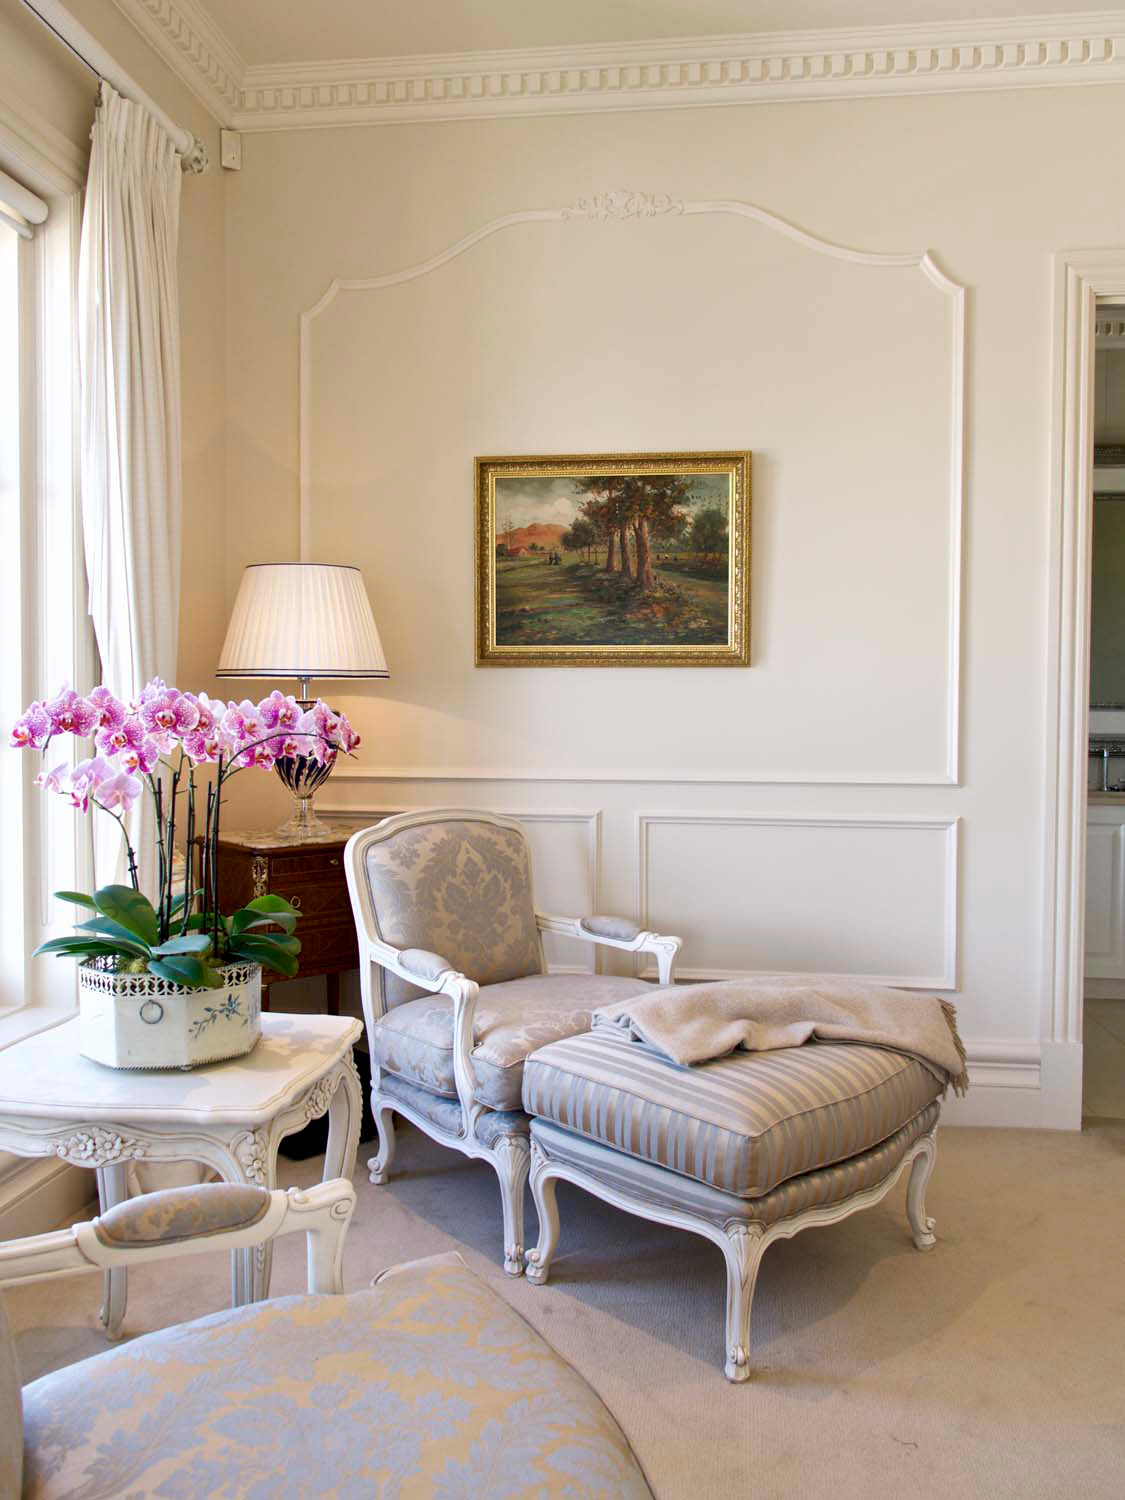 4 Bedroom with french furniture and wall panelling in traditional look